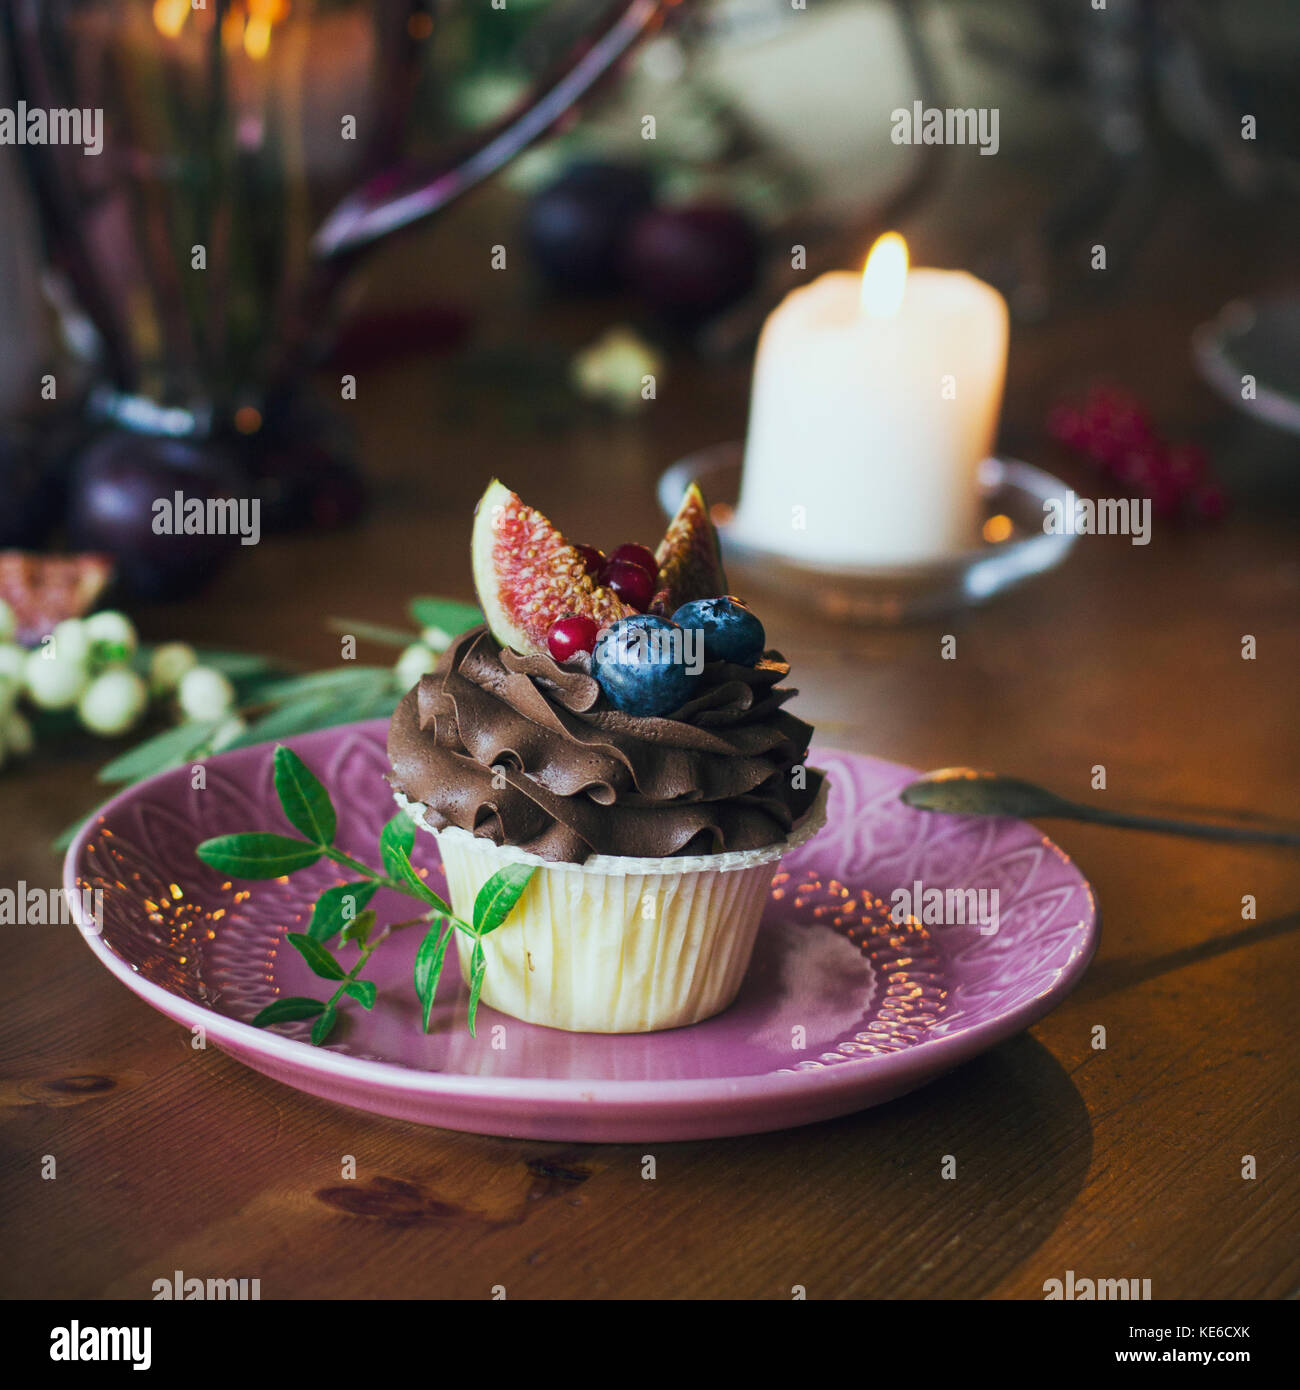 Chocolate cupcake with figs and berries on festive table - Stock Image